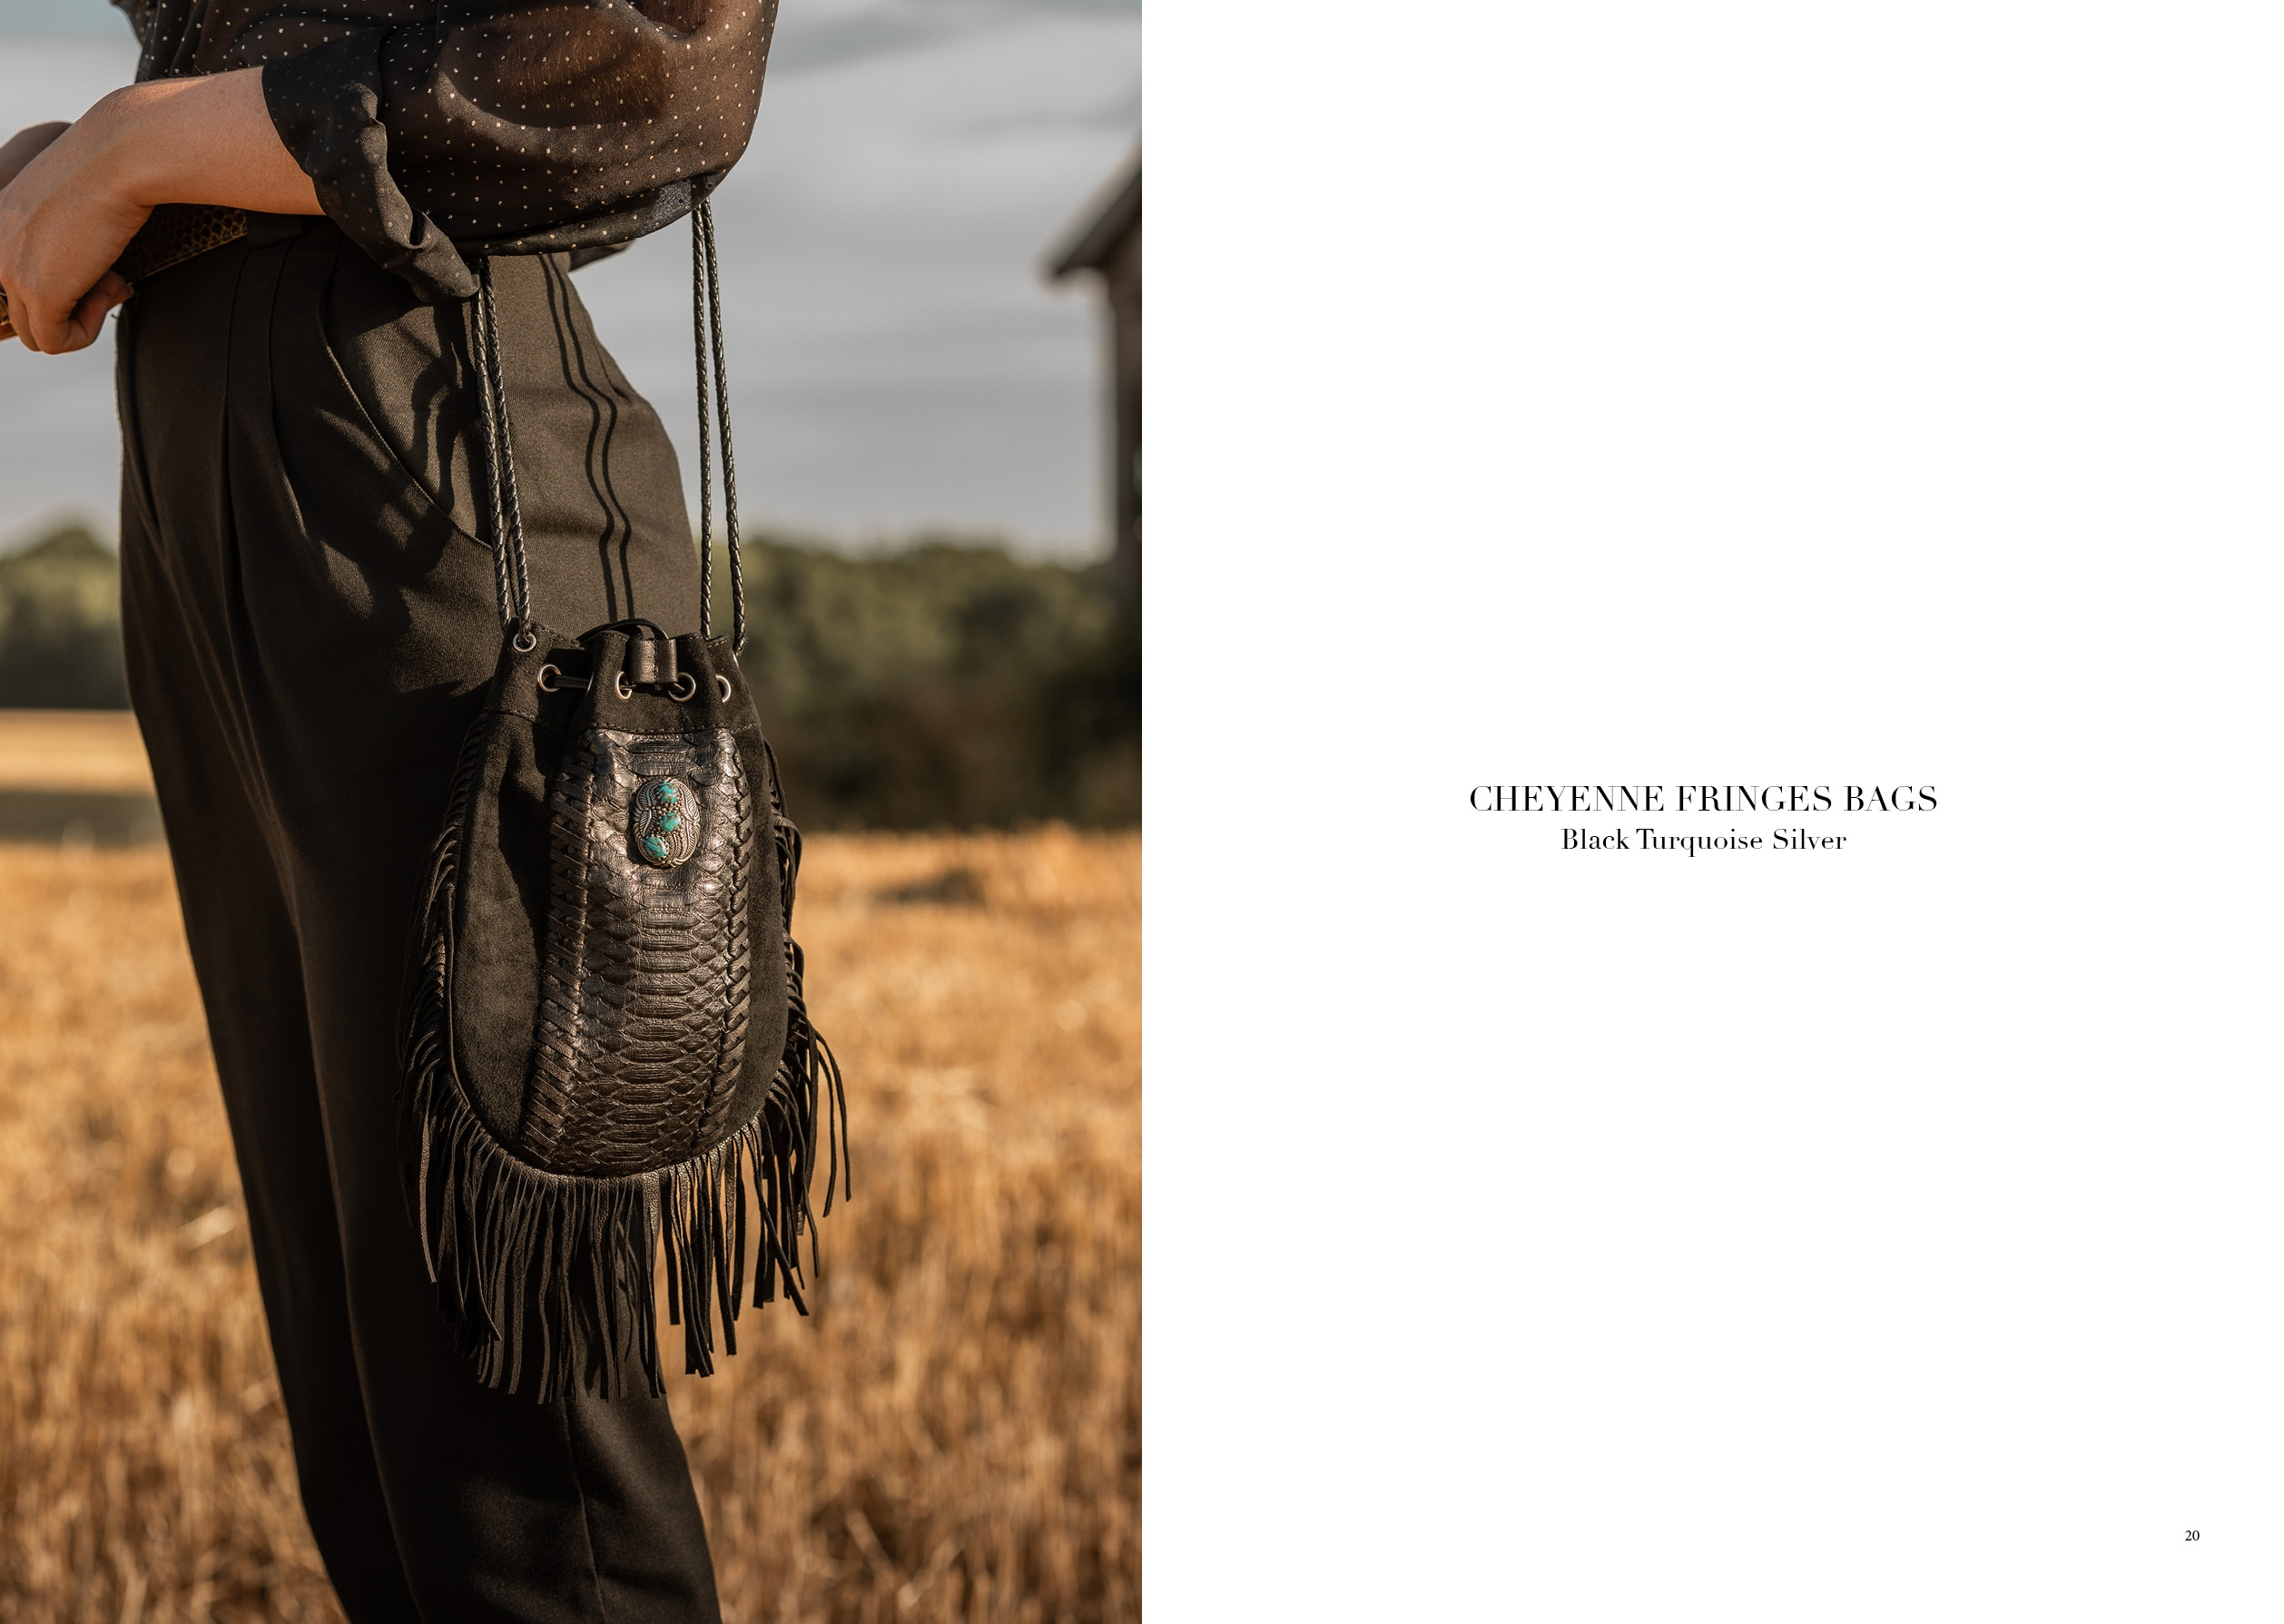 CHEYENNE FRINGES BAGS BLACK TURQUOISE SILVER